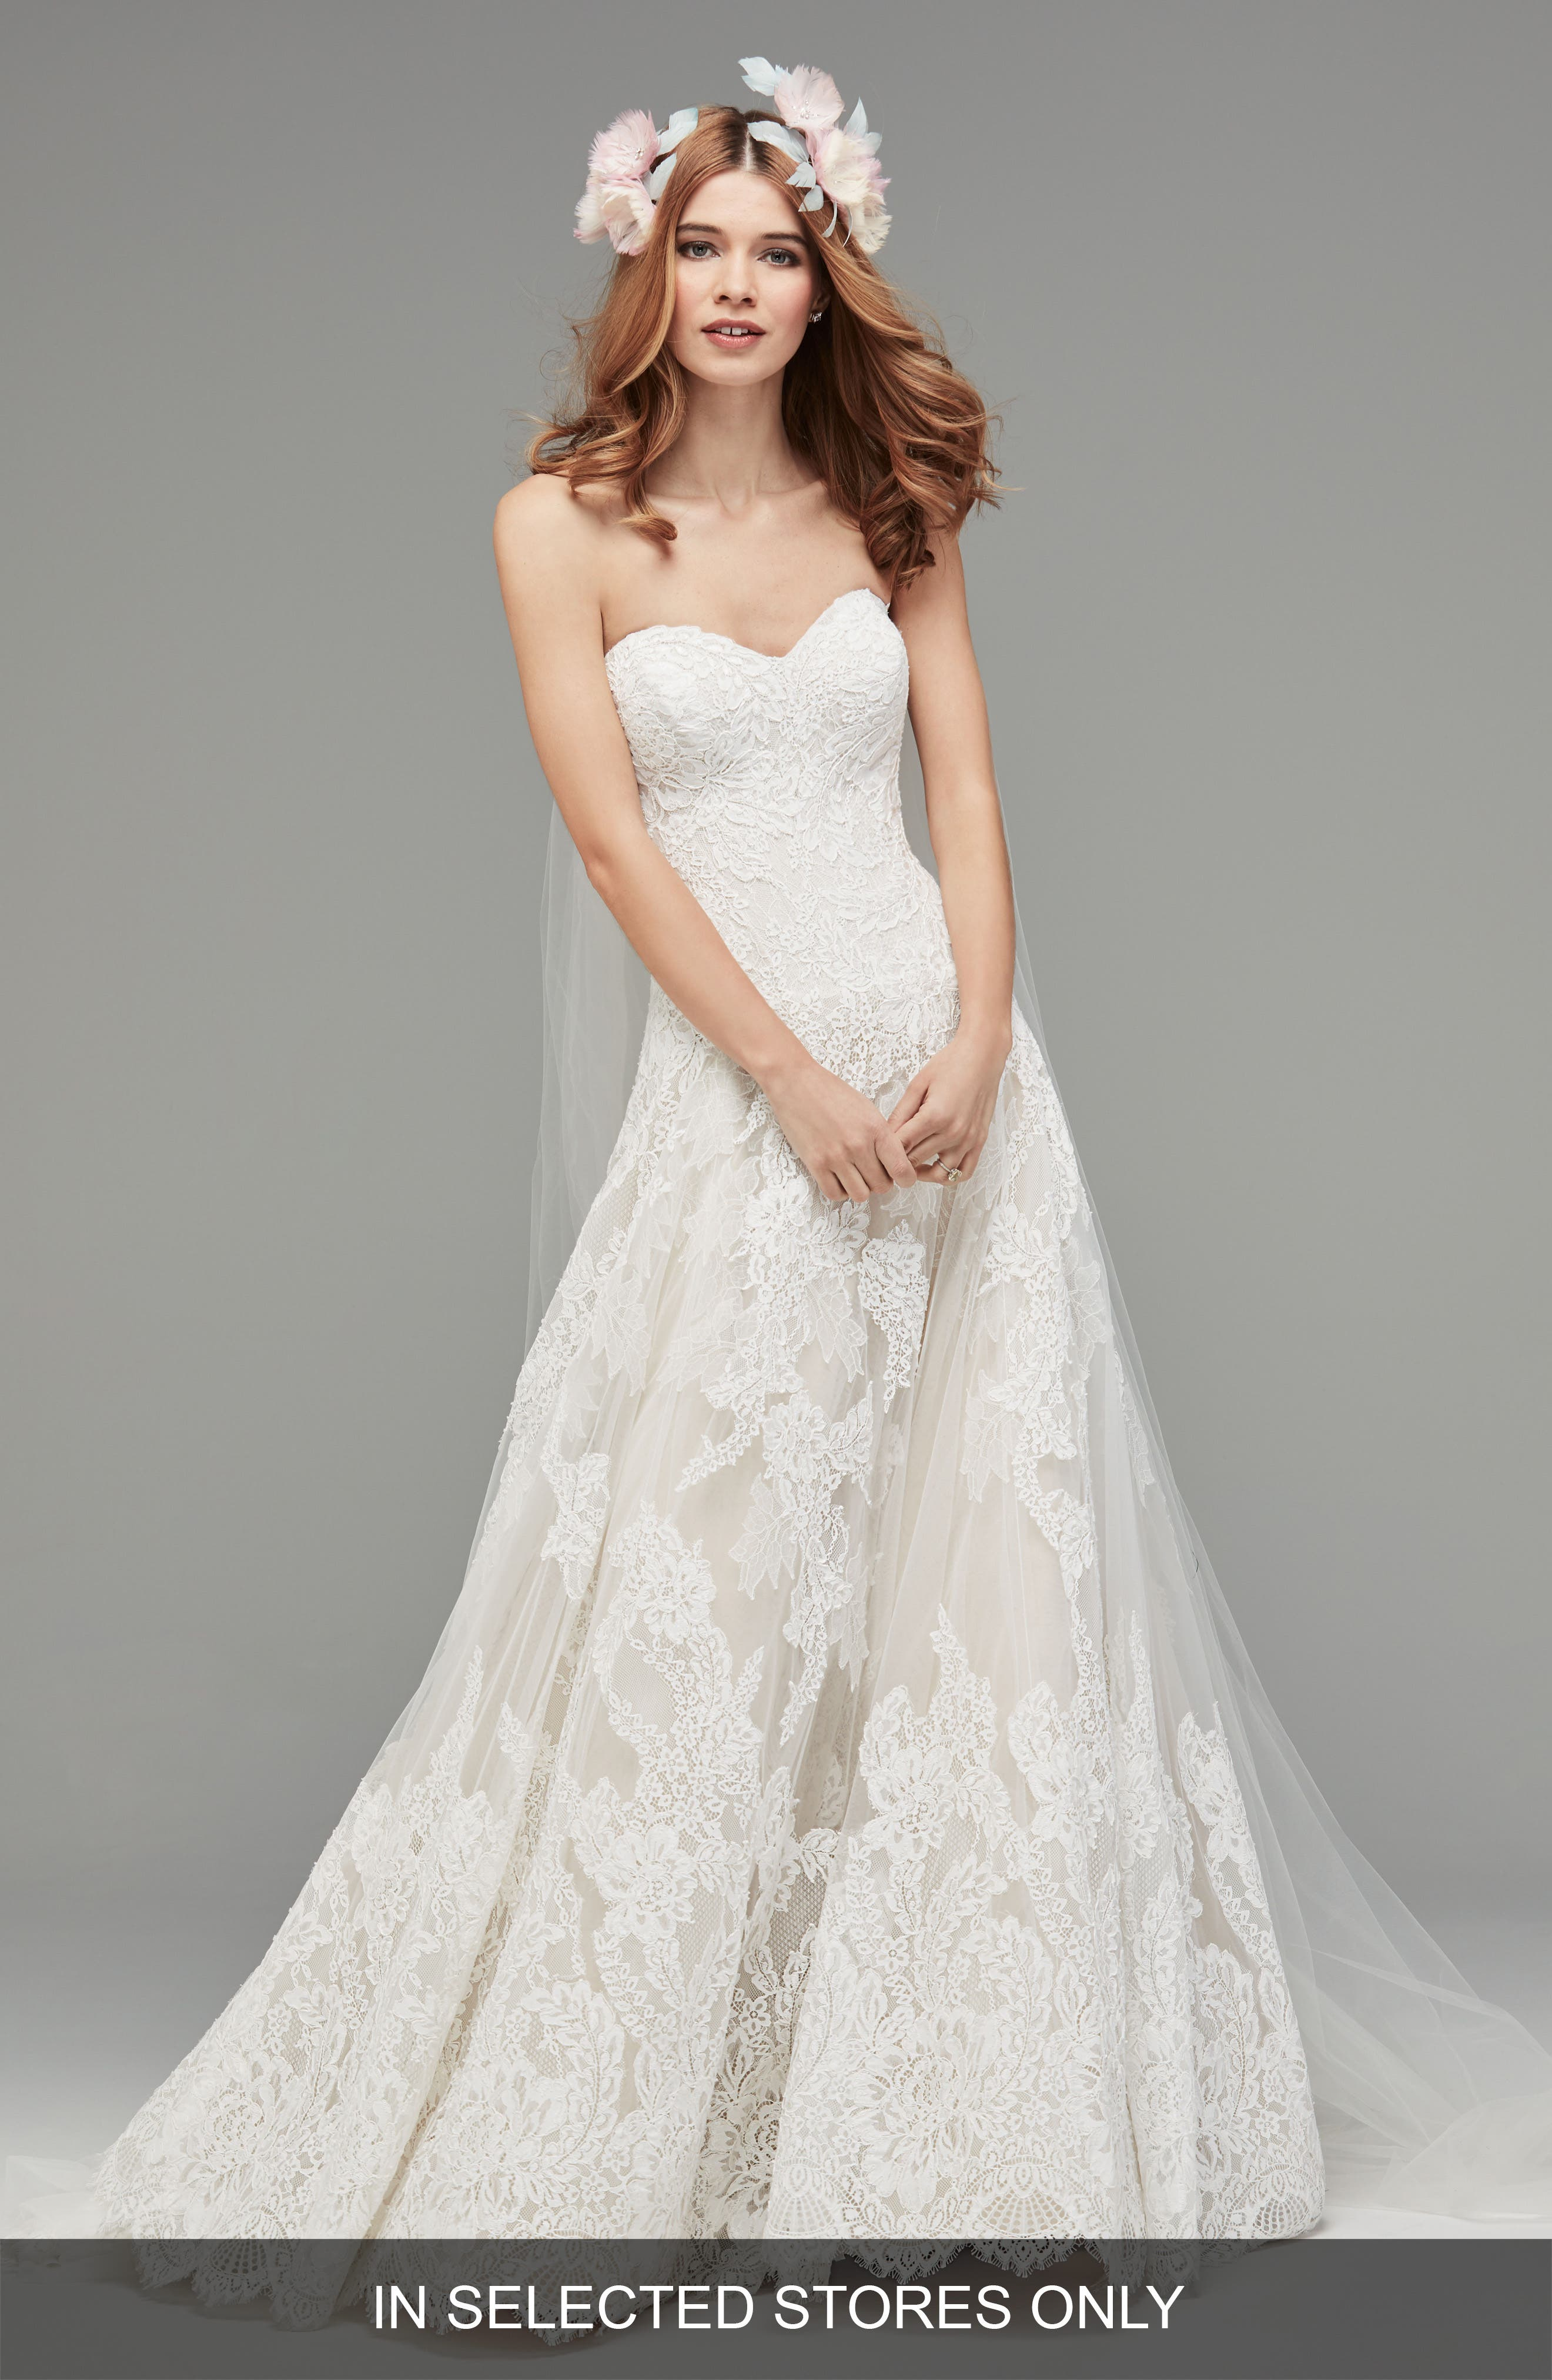 Lyric Strapless Lace Drop Waist Gown,                         Main,                         color, IVORY/NUDE